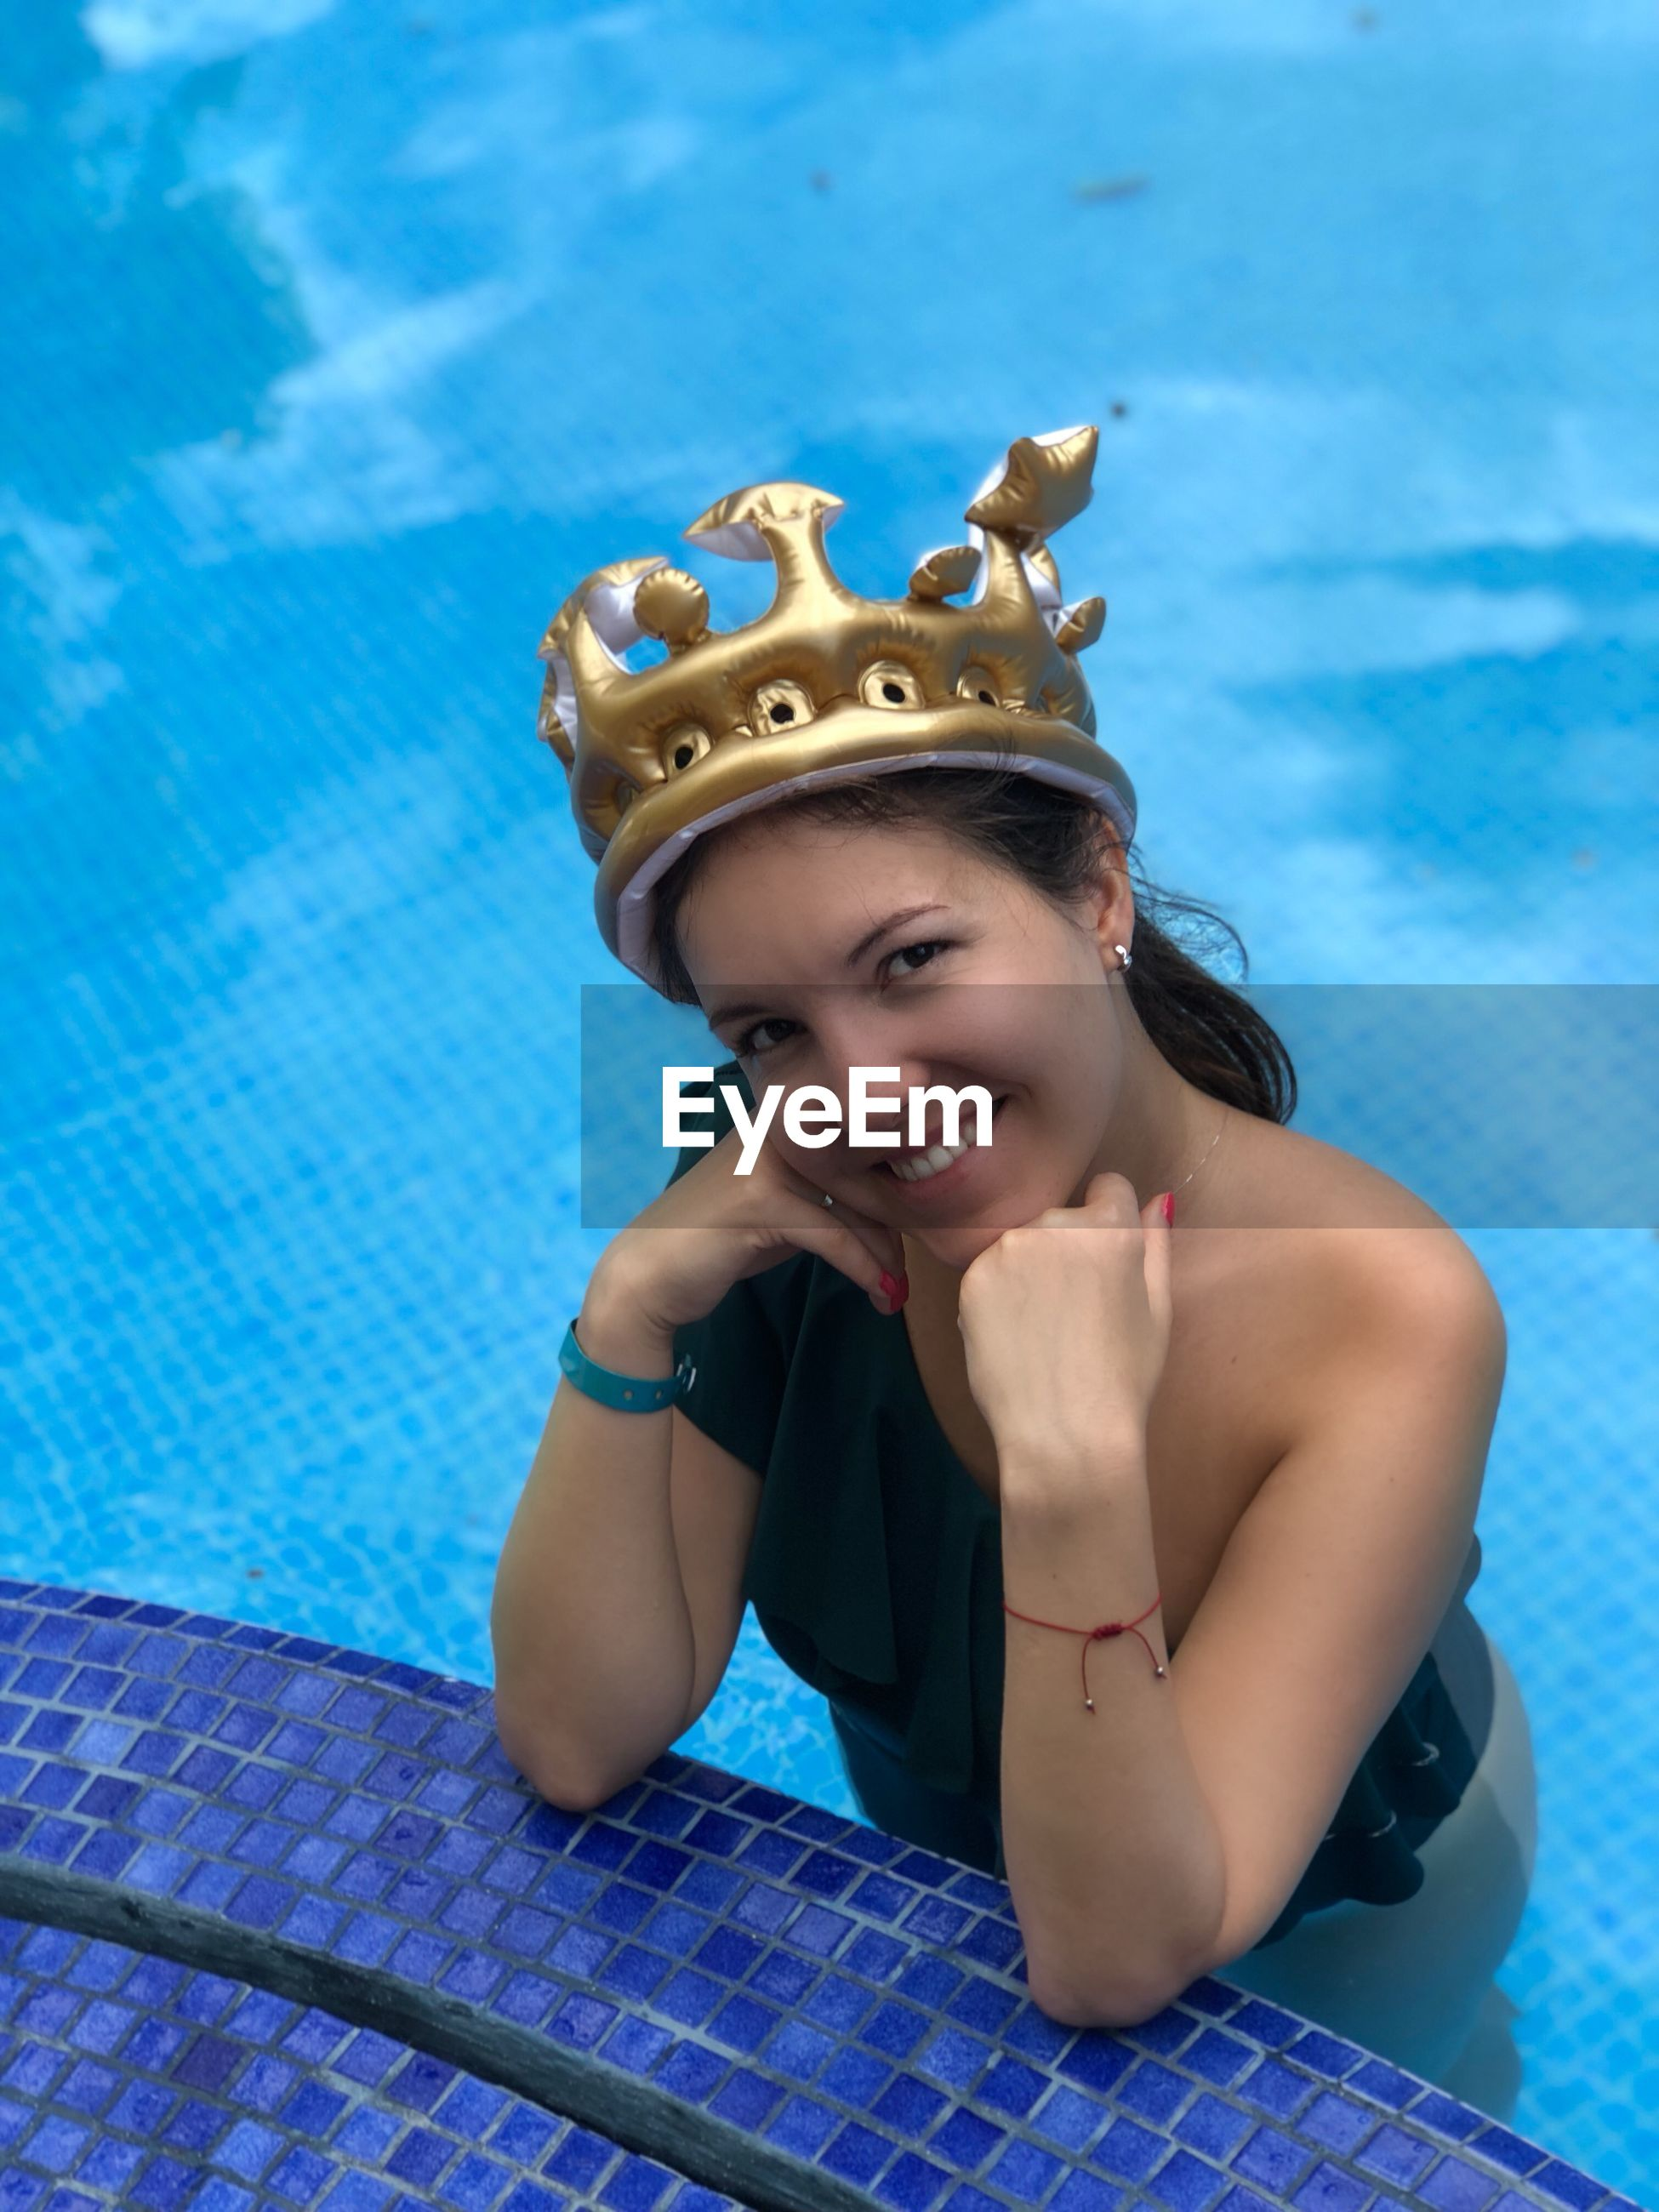 Portrait of smiling young woman wearing inflatable crown swimming pool